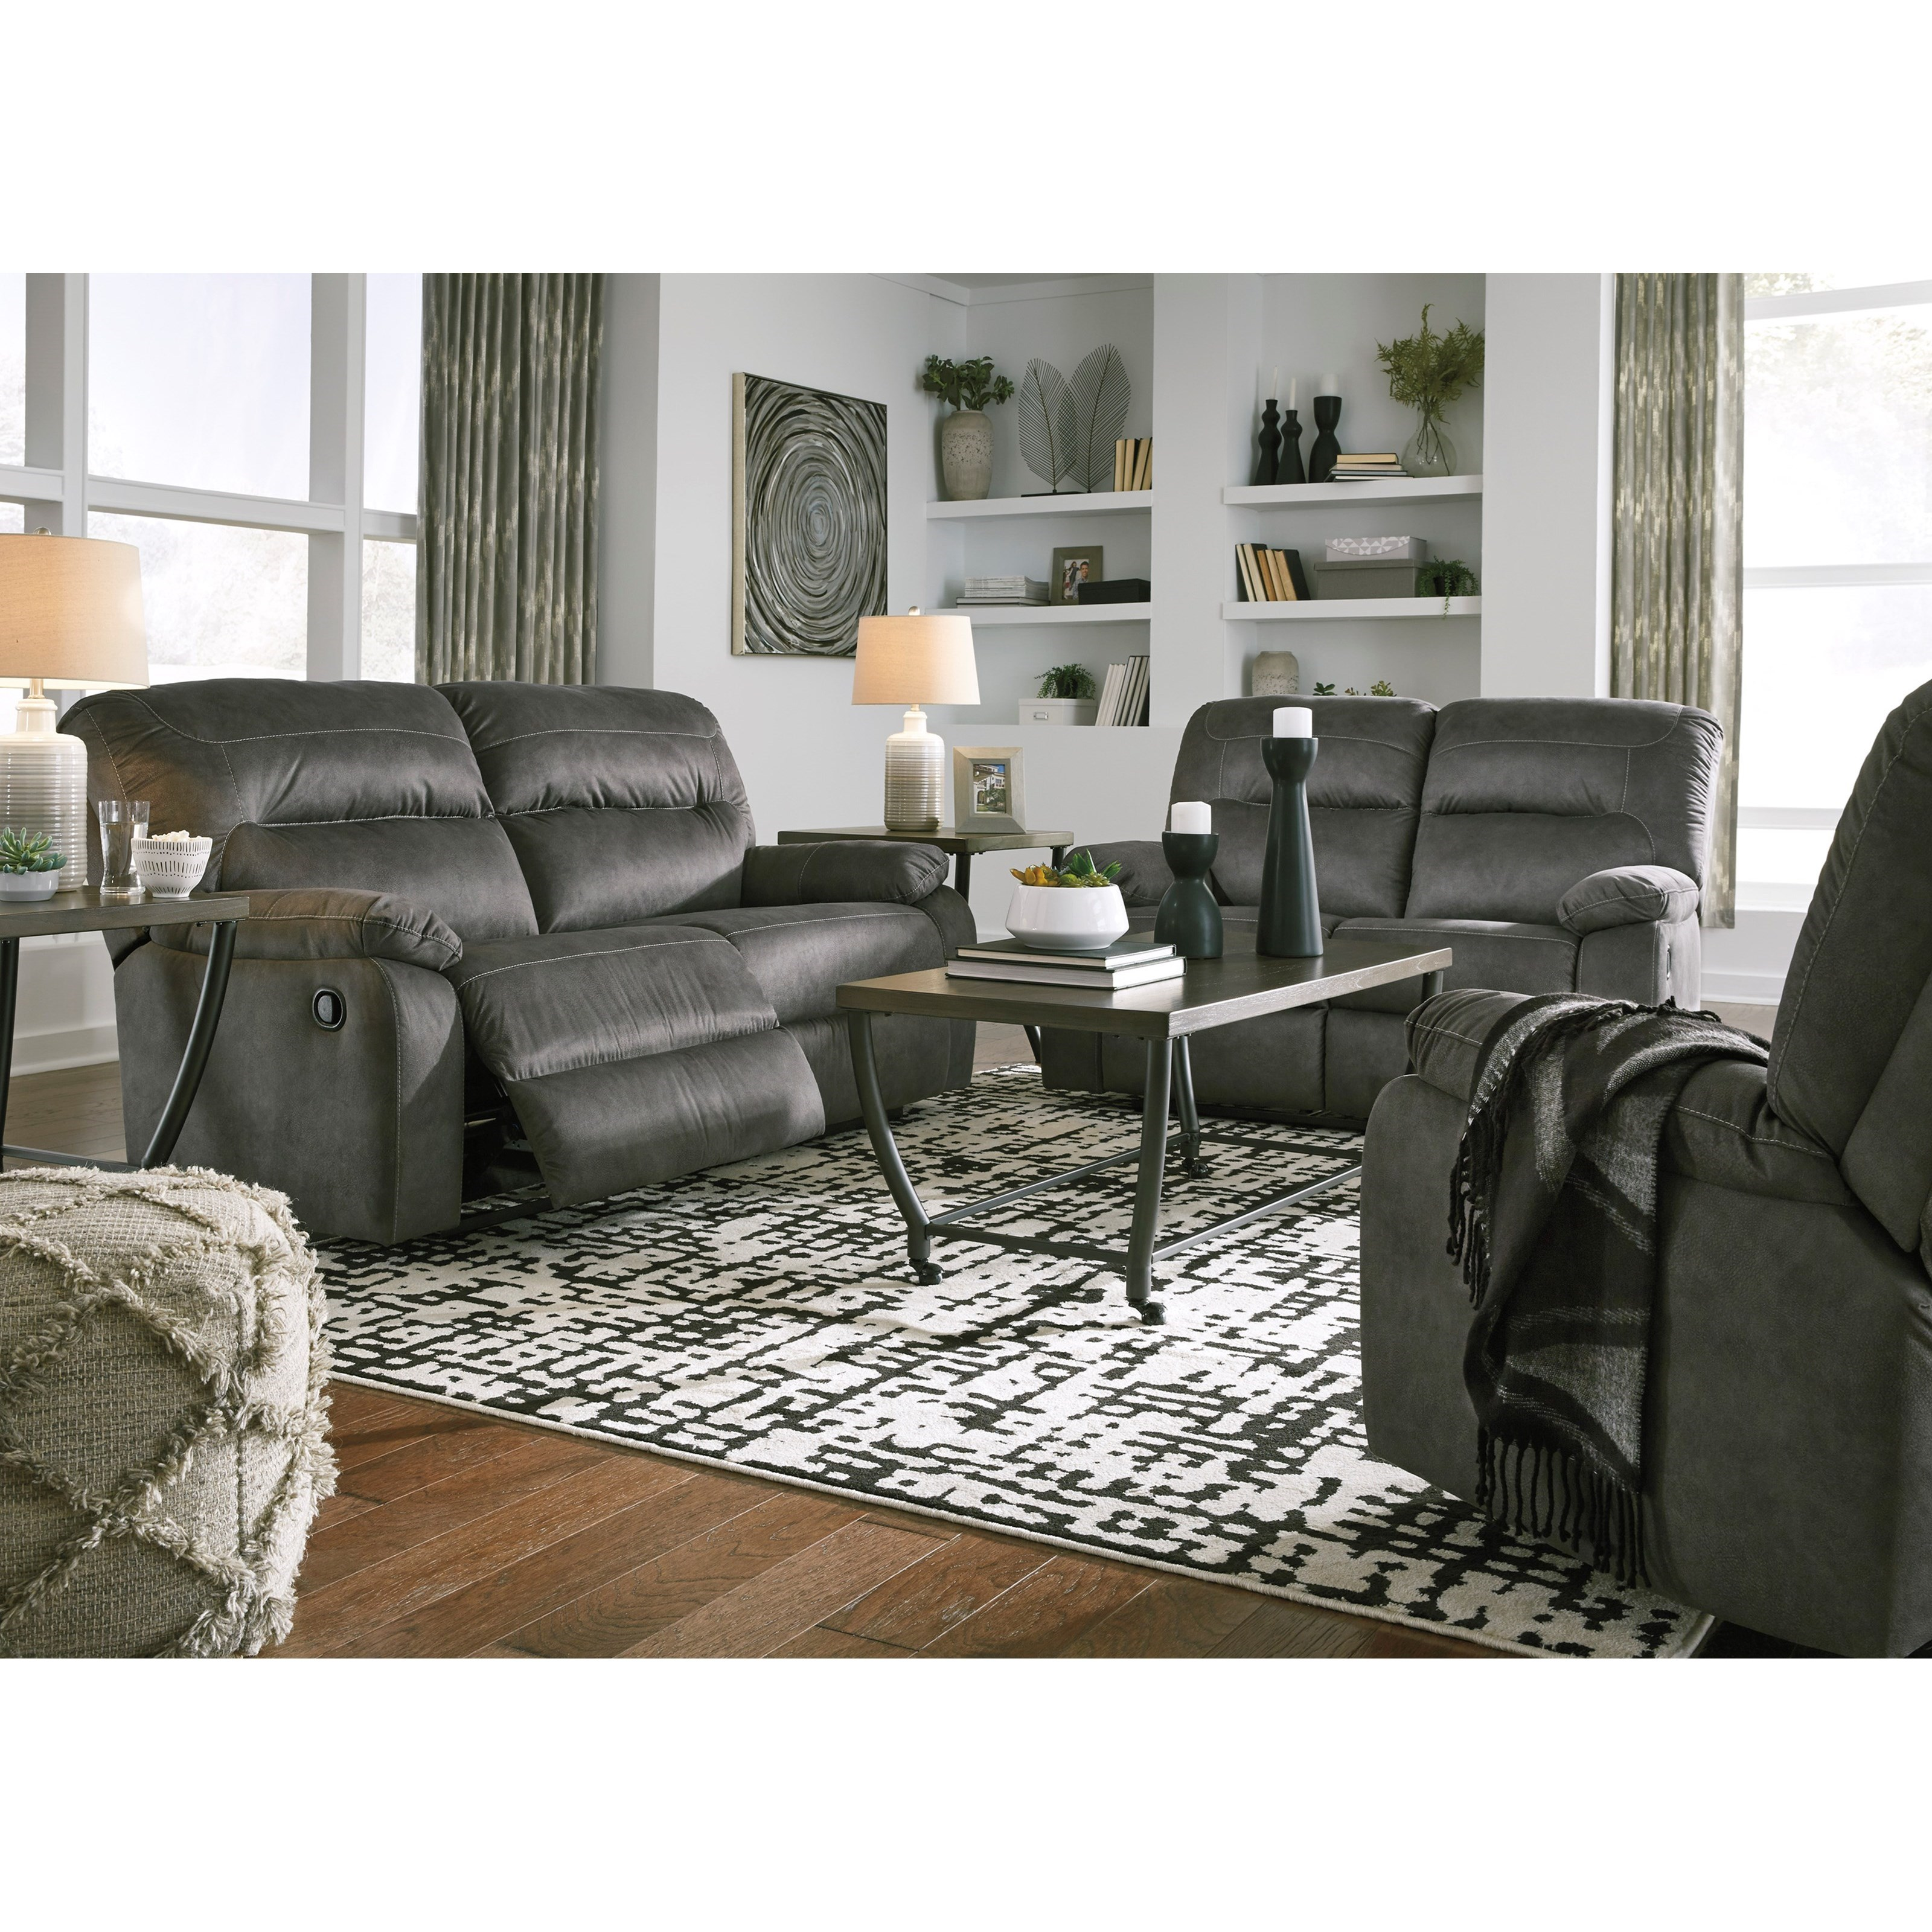 Bolzano Reclining Living Room Group by Benchcraft at Standard Furniture